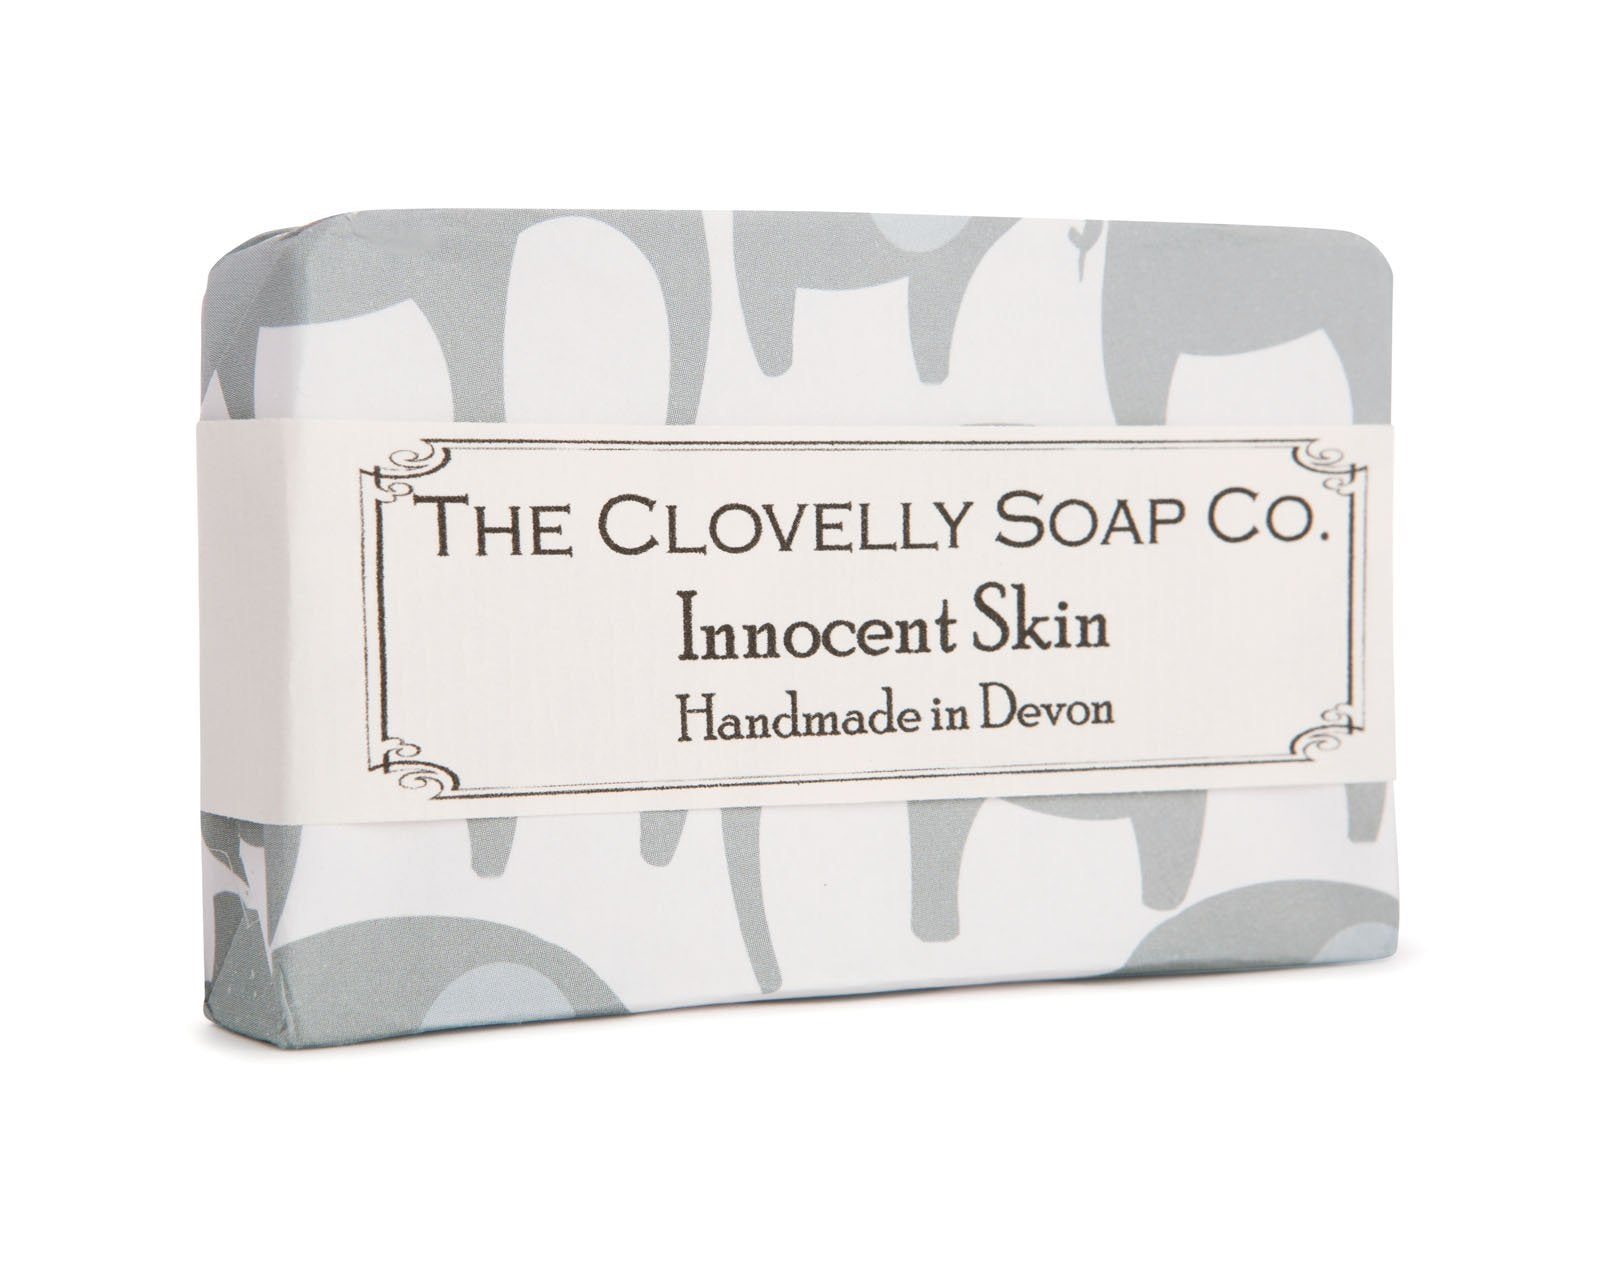 Handmade Scent Free Innocent Skin Natural Soap Bar 100g